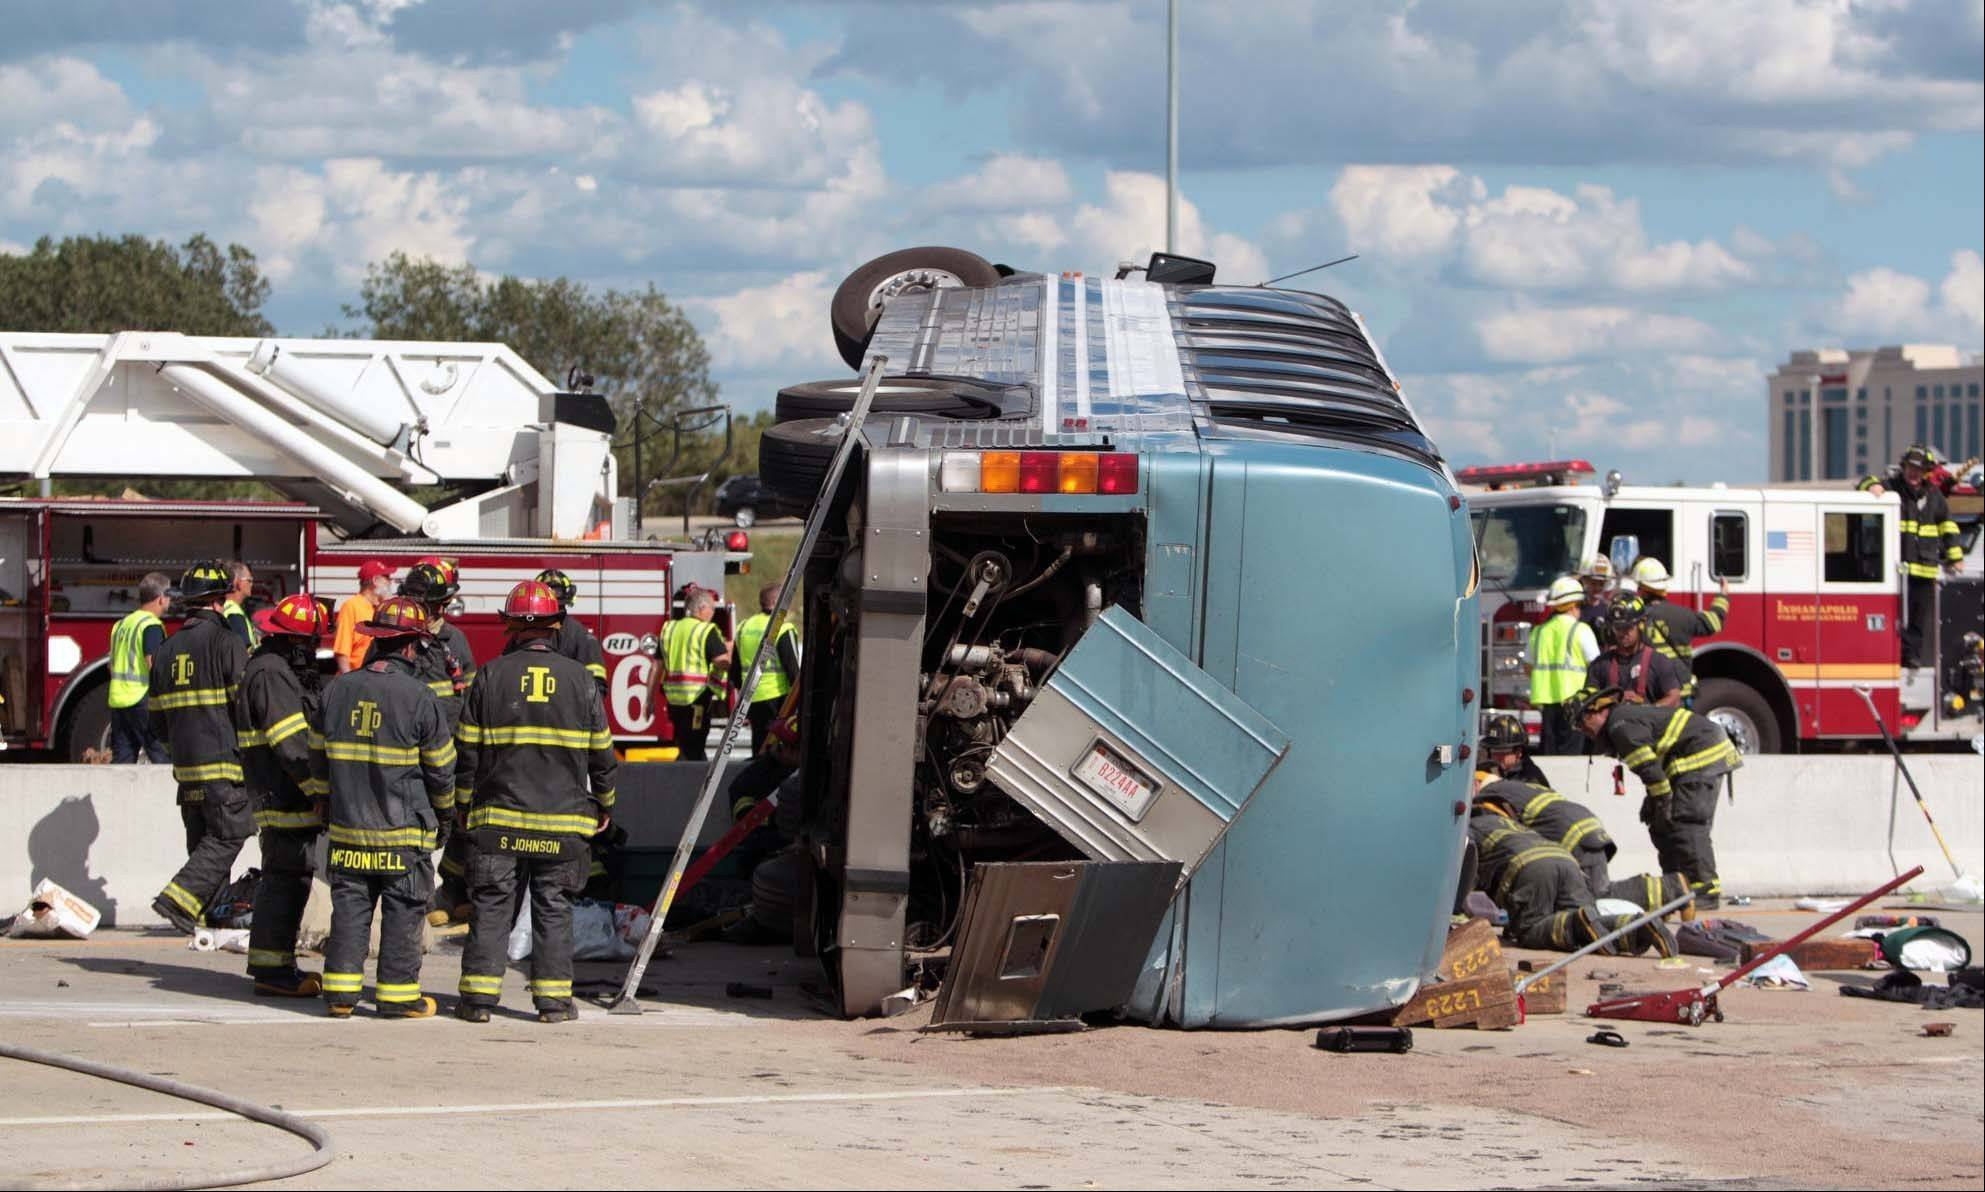 Firefighters work to extricate people from a bus crash Saturday in Indianapolis.